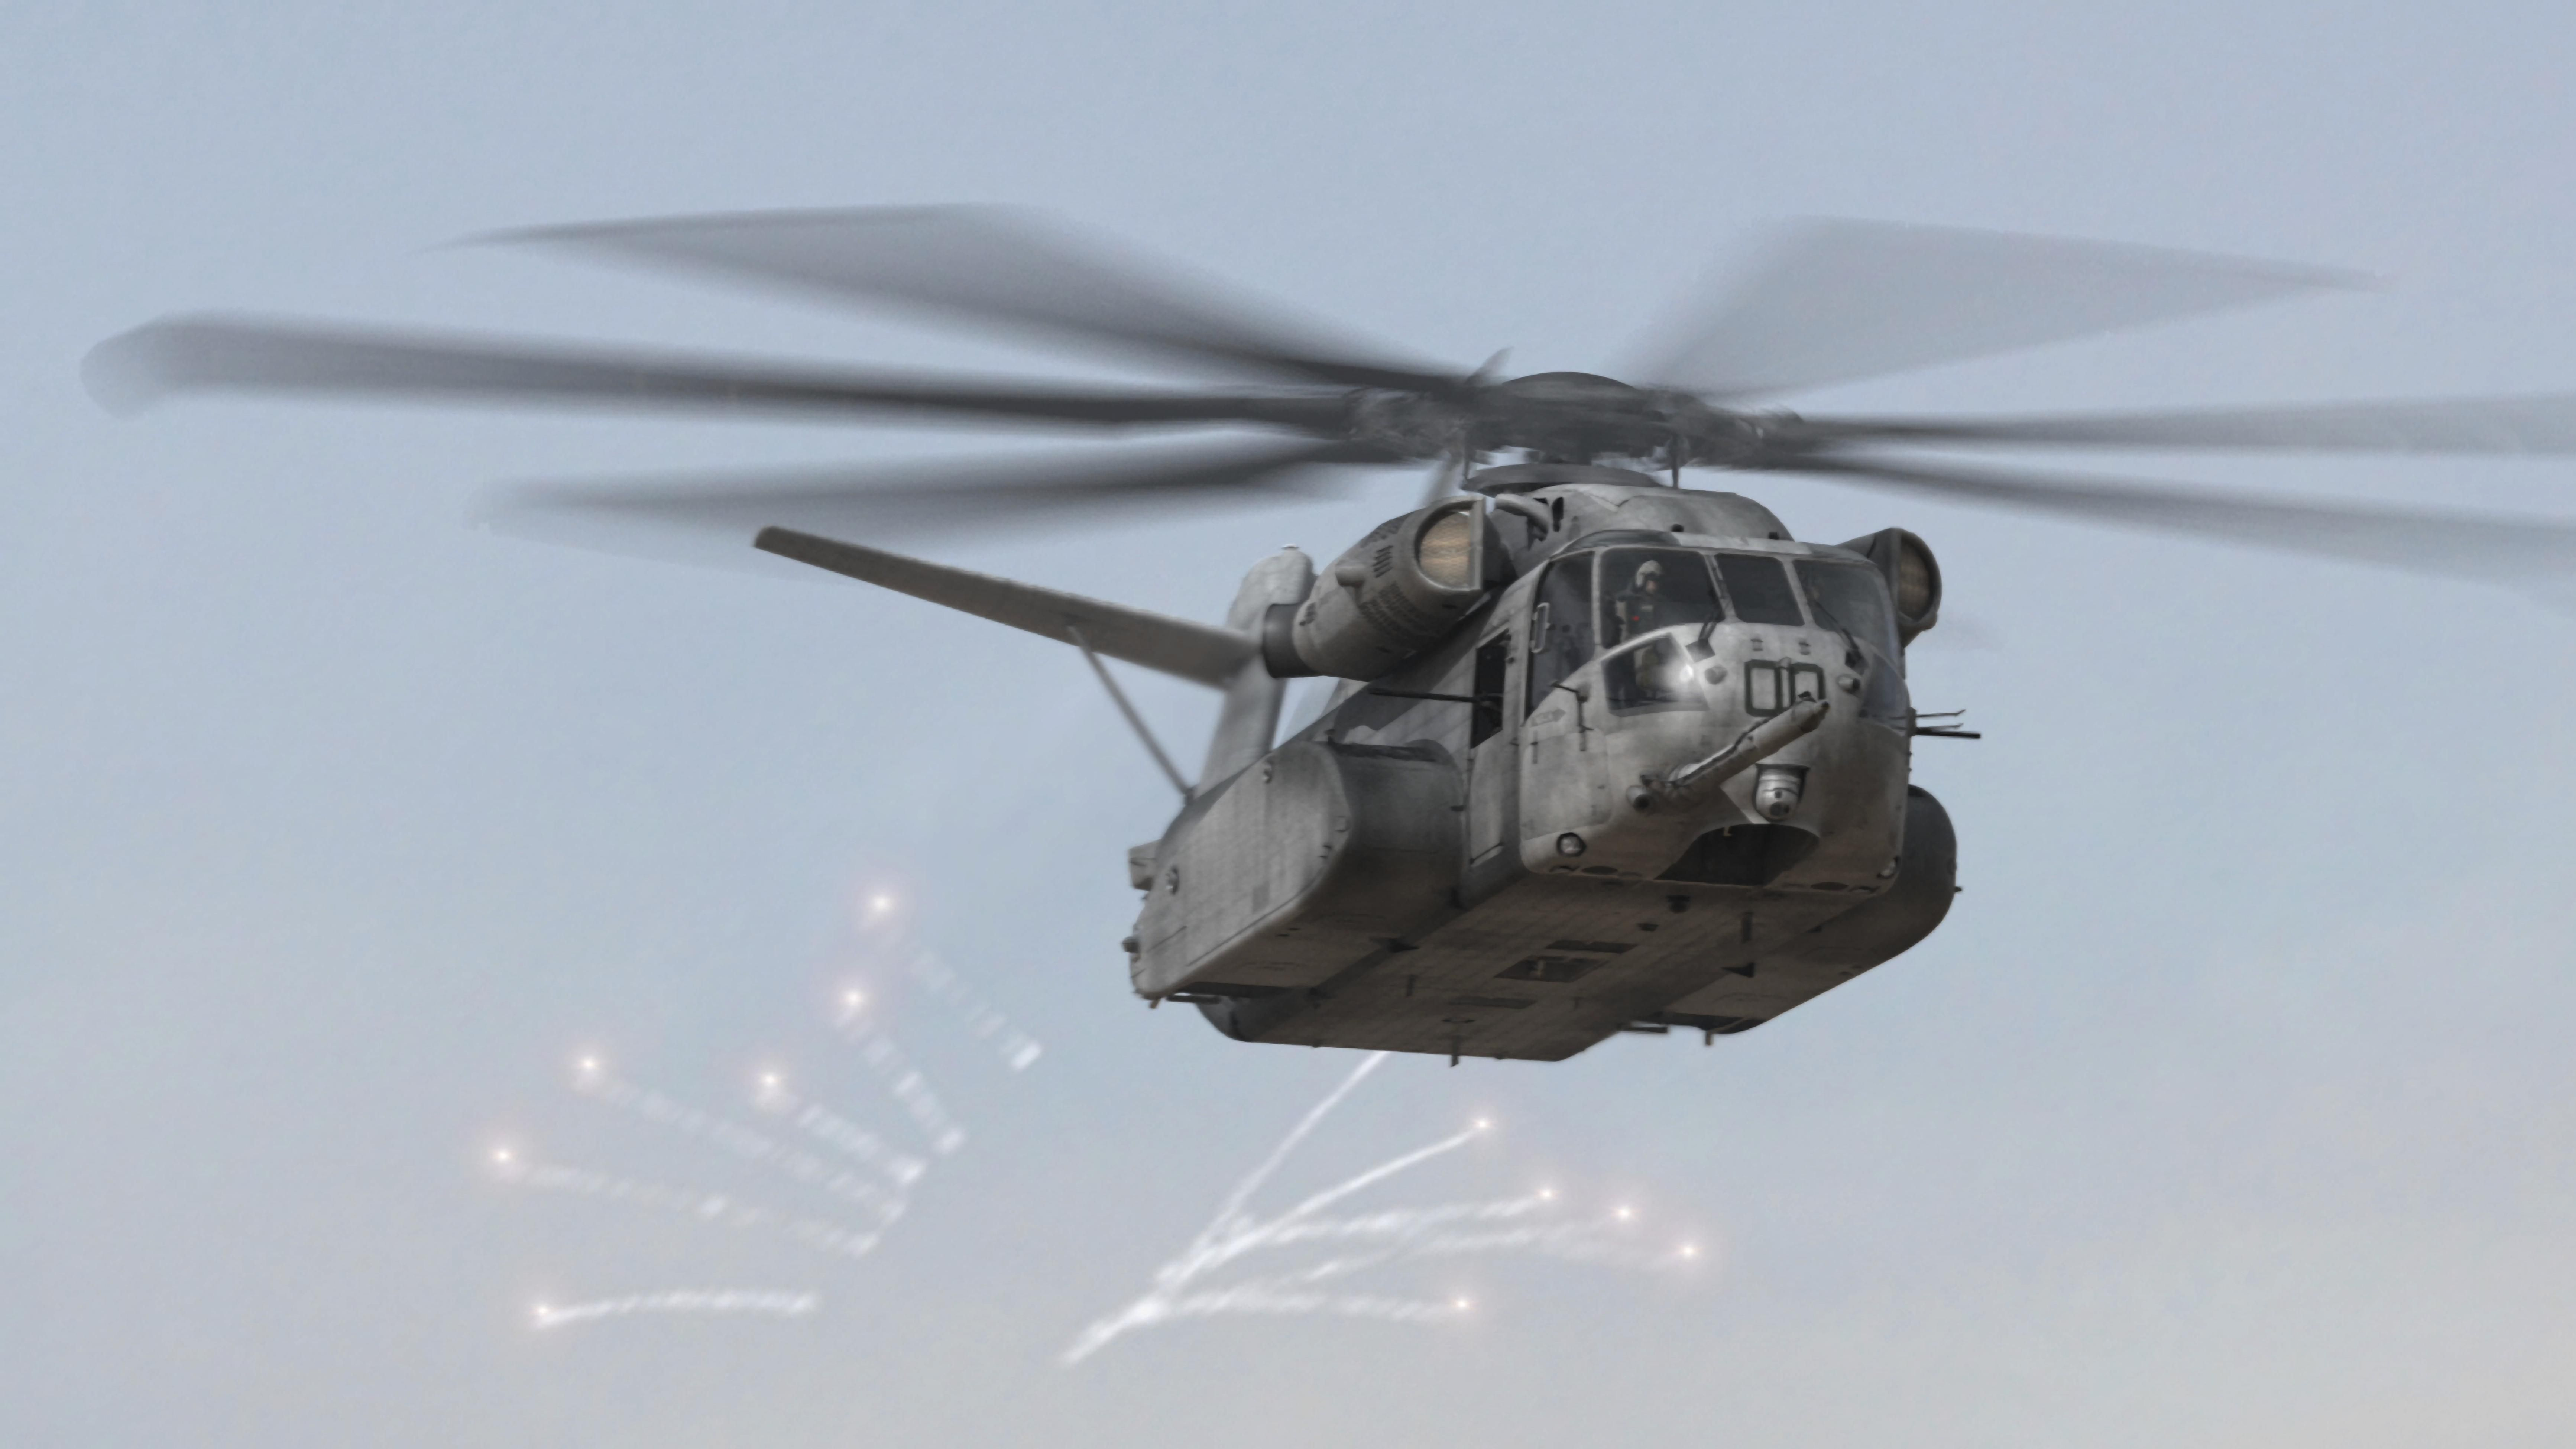 The CH-53K model will be the world's premier heavy lift helicopter, leveraging the lessons learned over 50 years of manufacturing and operational success with its CH-53A/D/E predecessors.